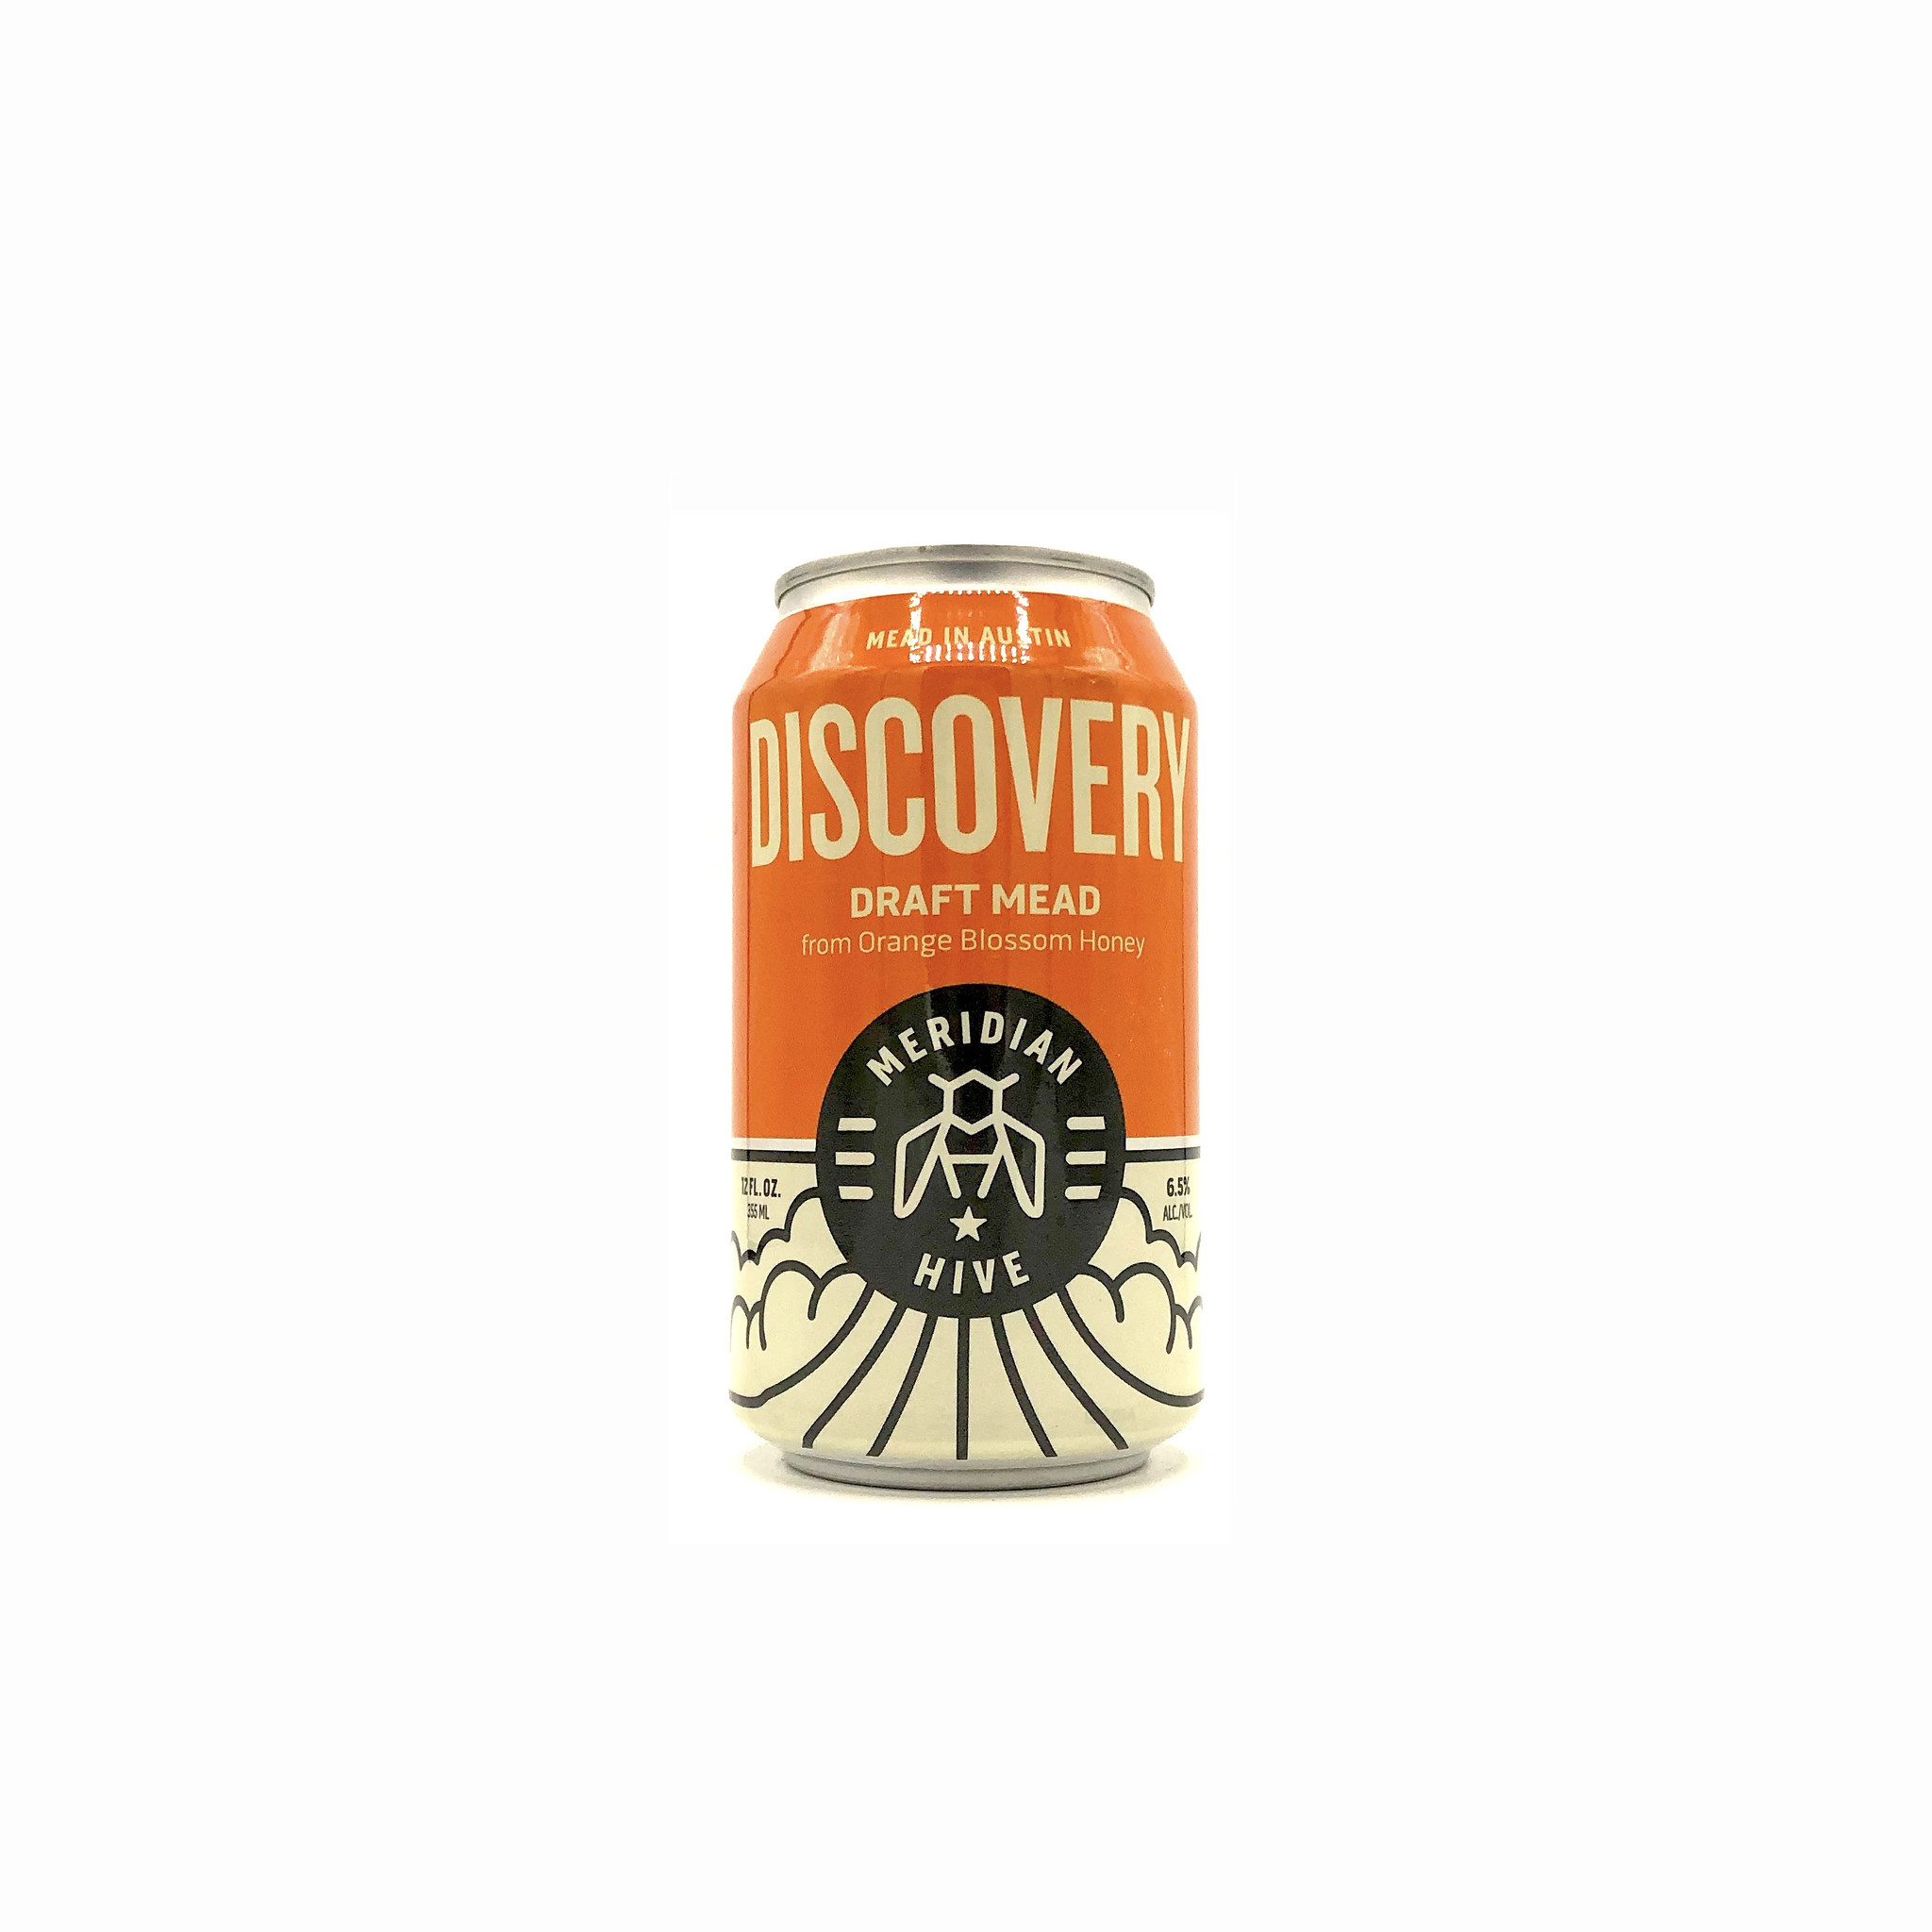 Orange Blossom Honey Mead (can) 12oz Discovery